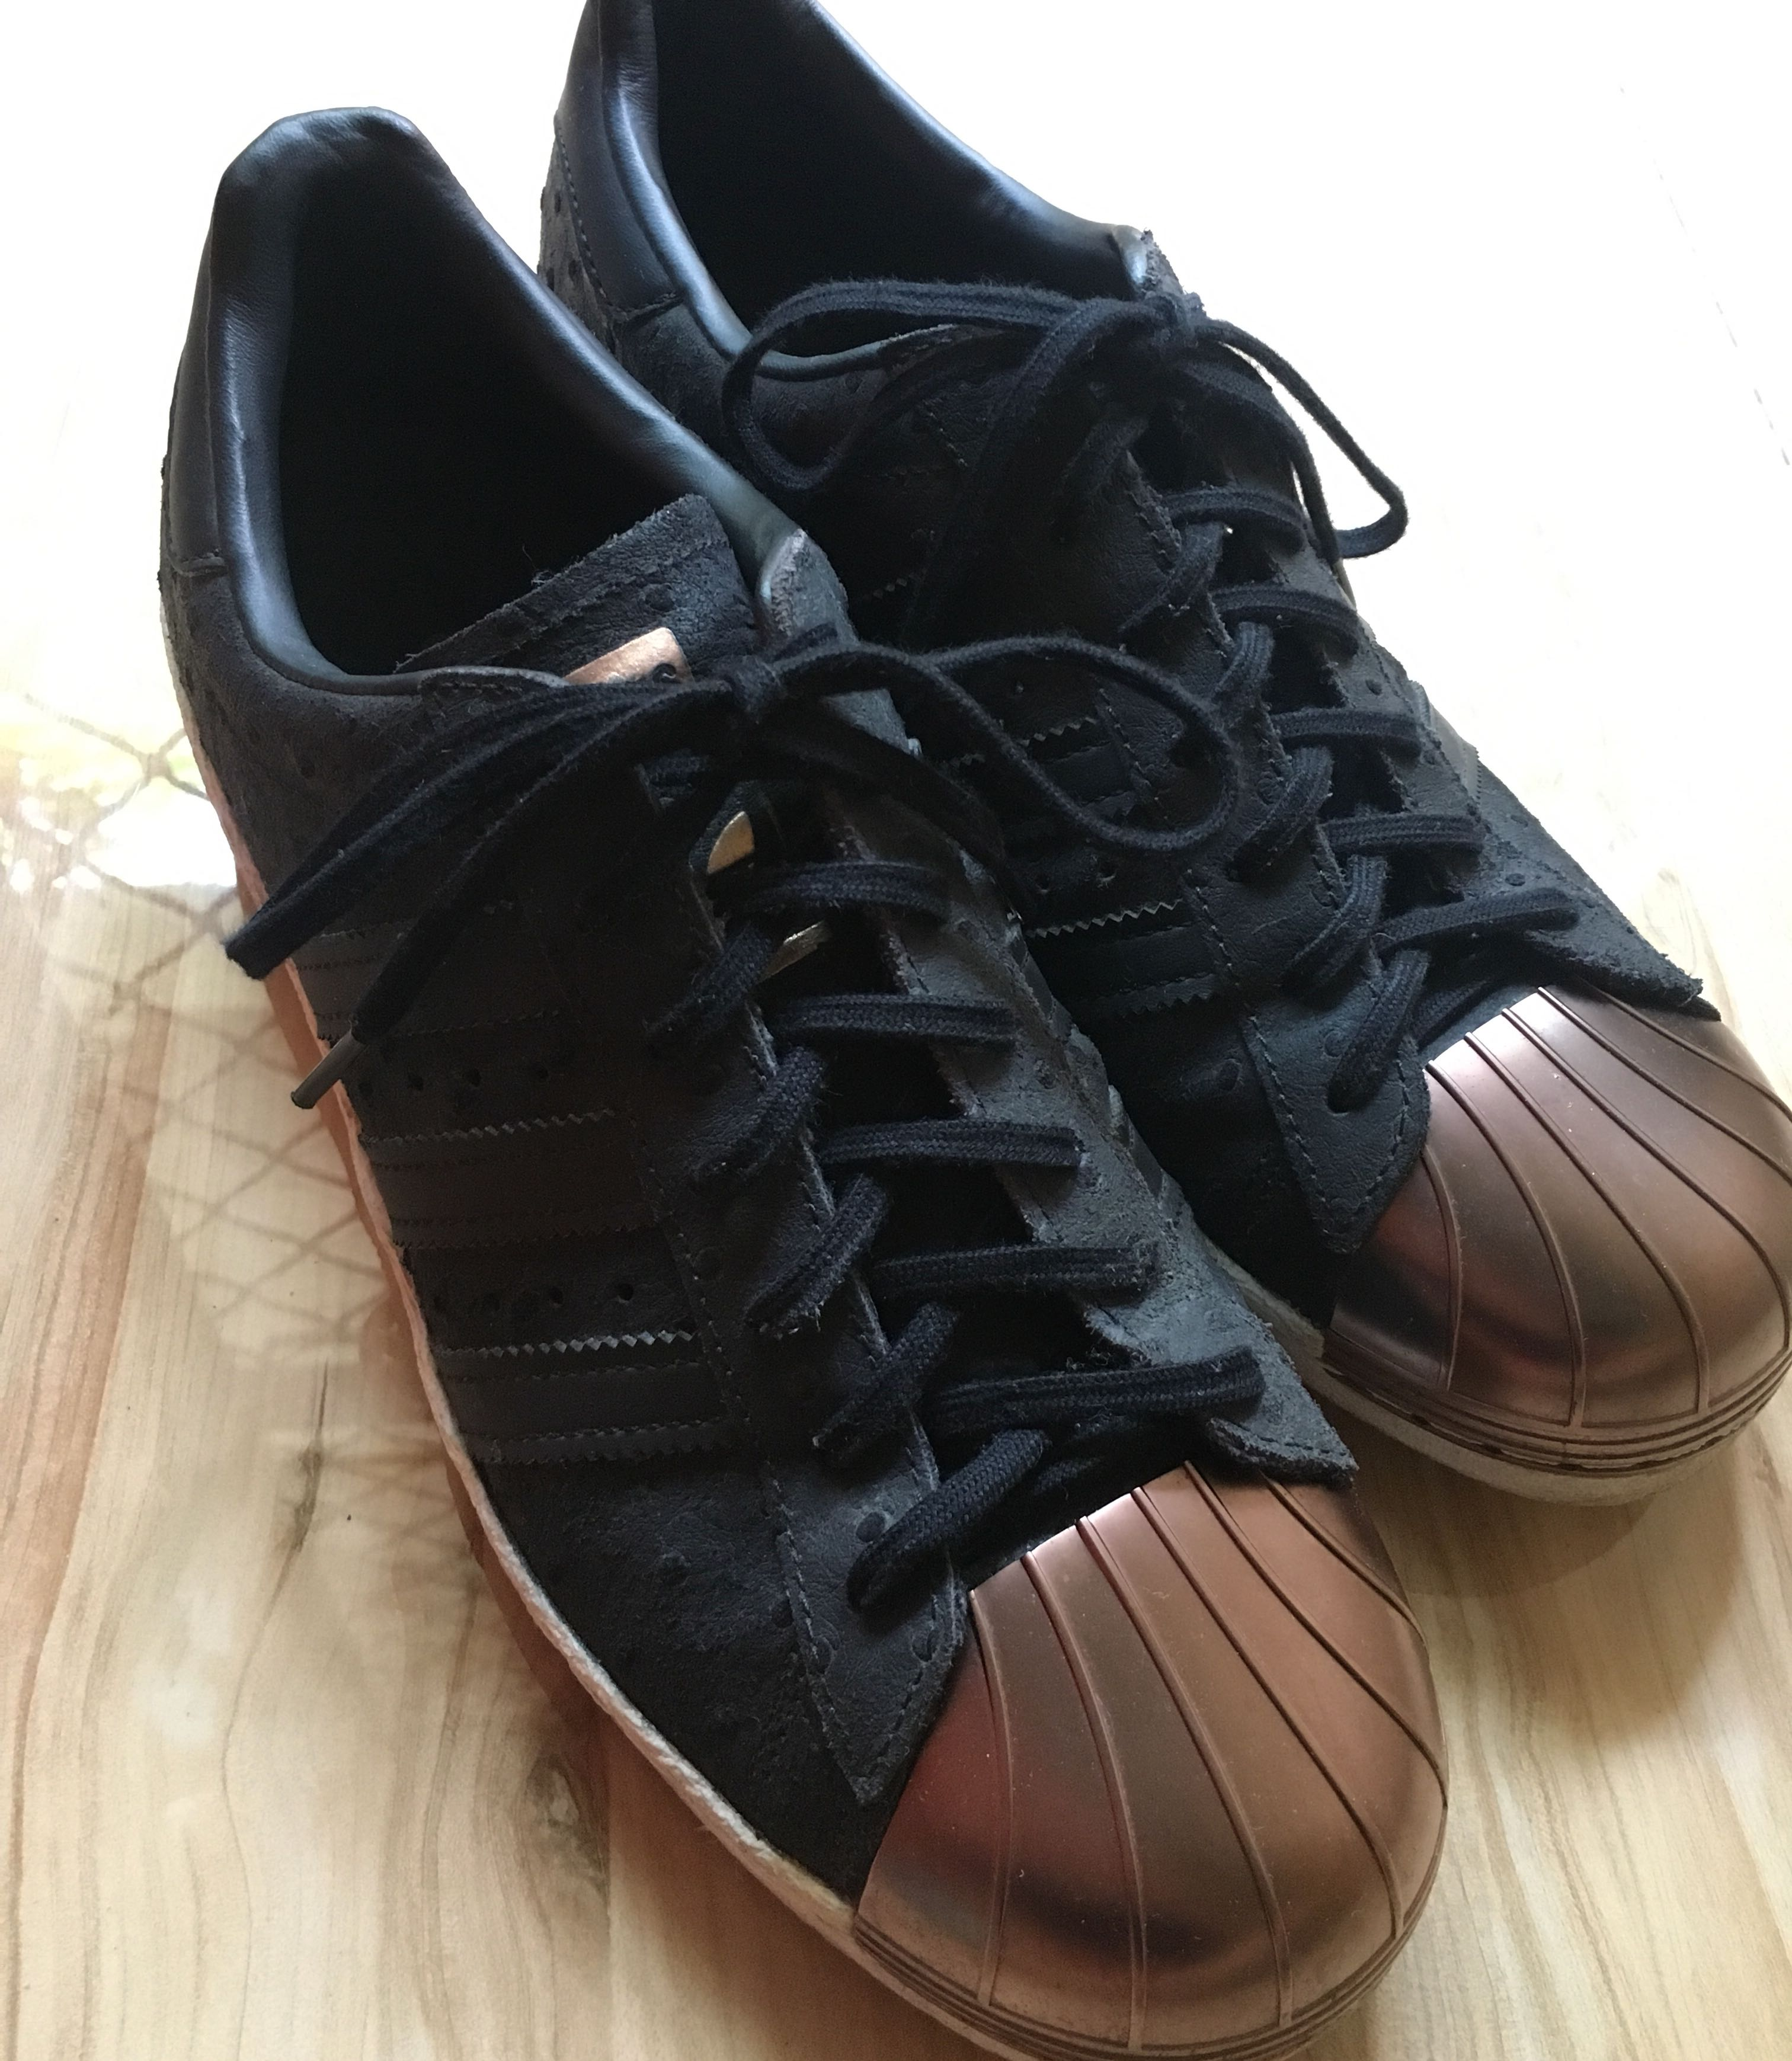 reducir cuerno máquina  Adidas 80's Superstar Black Rose Gold Metal toe, Women's Fashion, Shoes,  Sneakers on Carousell